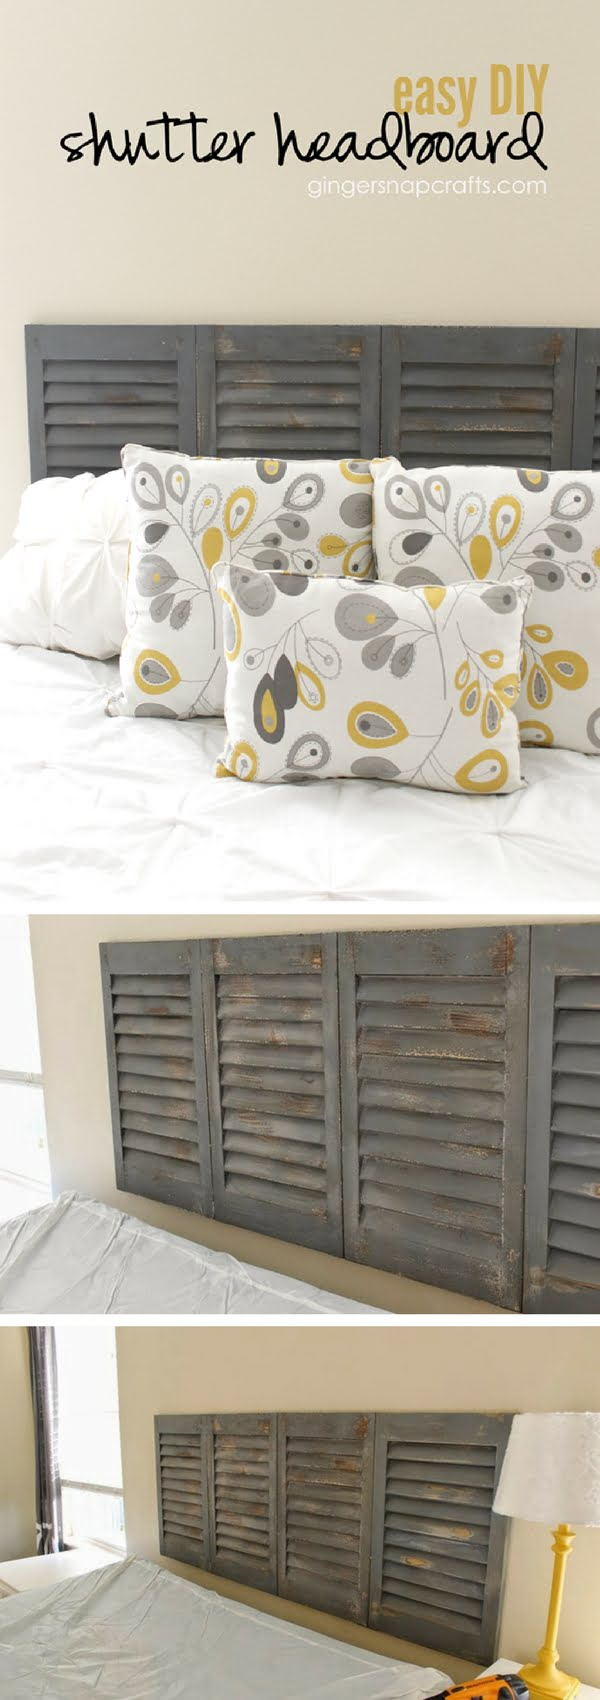 How to make an easy DIY headboard from old shutters